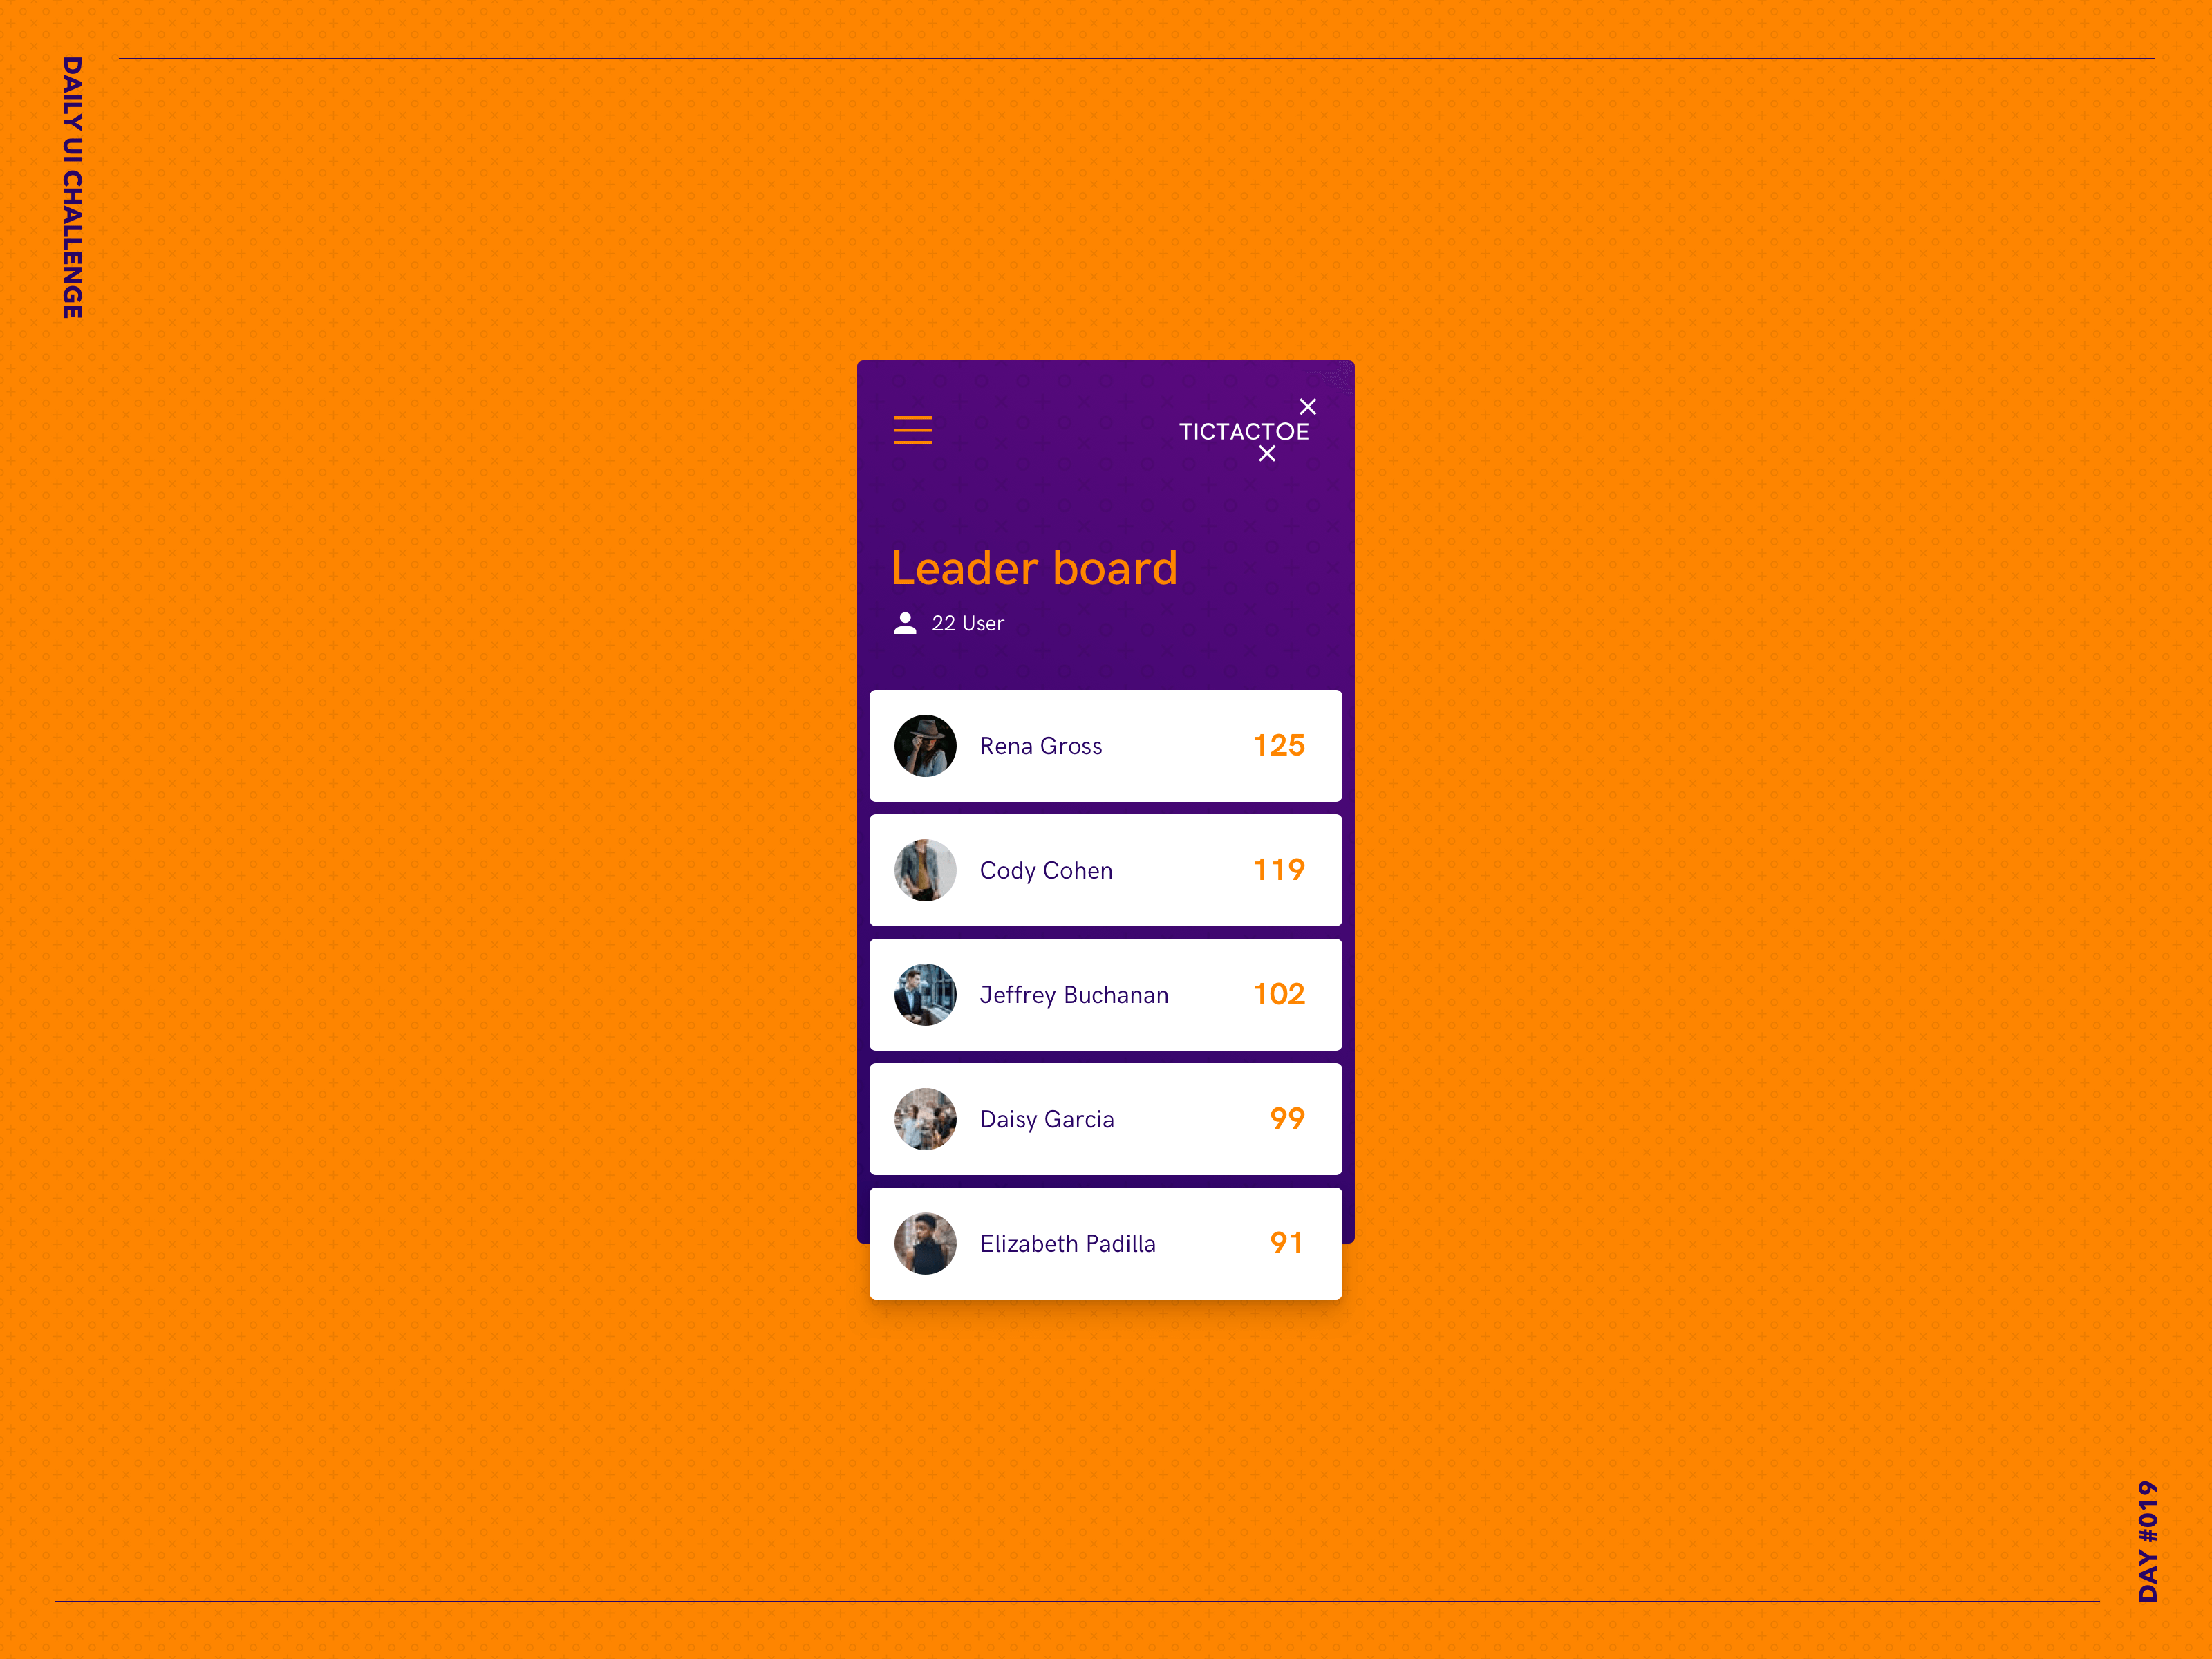 019-DUIC-Leaders-Board-Dribbble